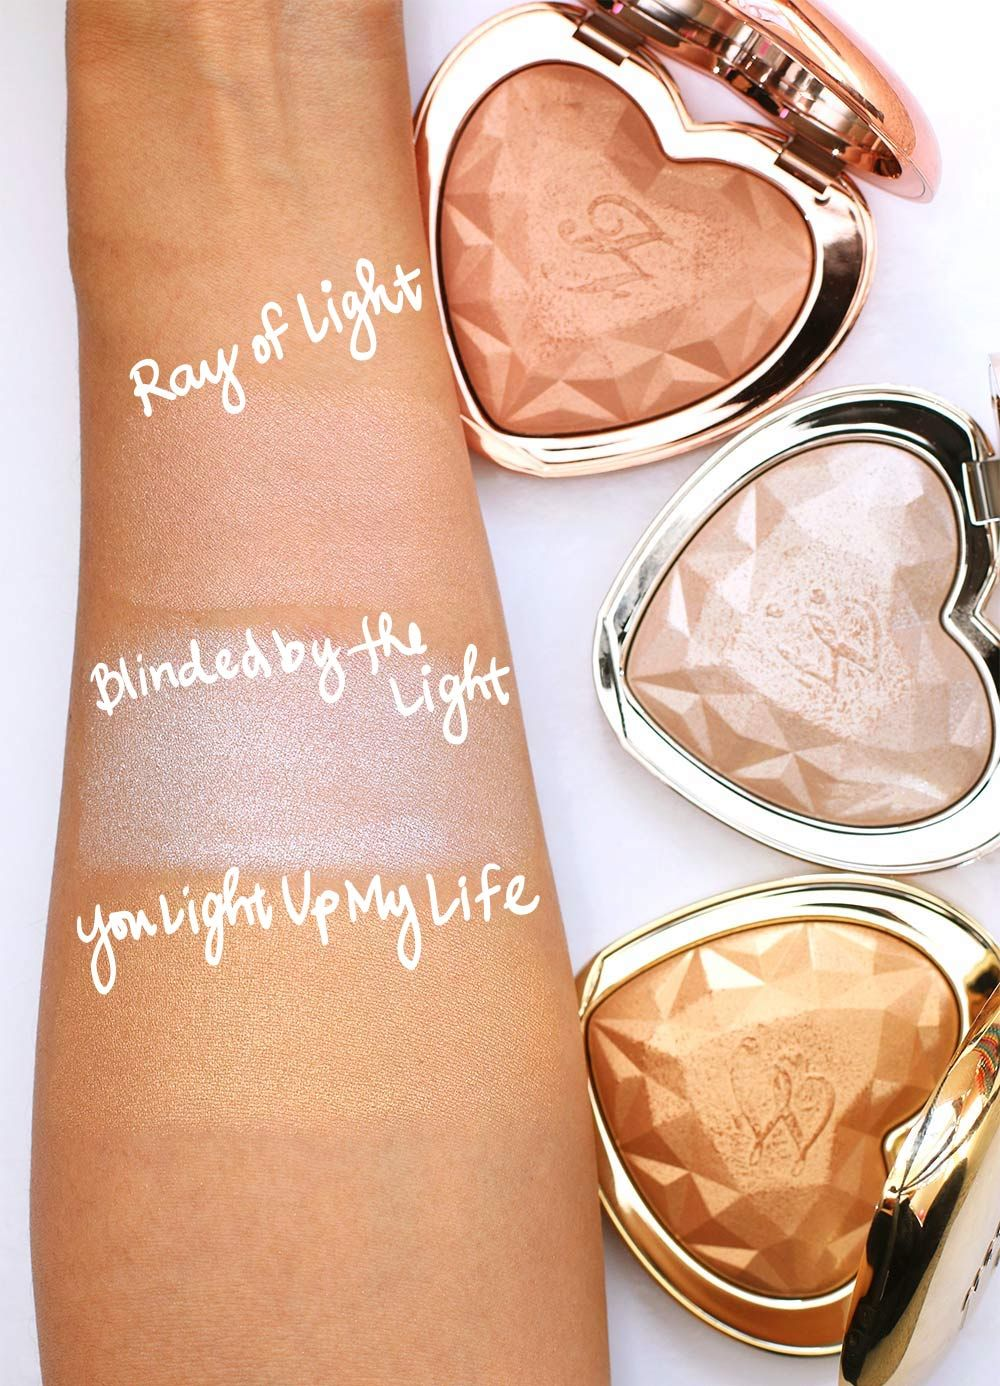 Too Faced Love Light Prismatic Highlighter Again Not Sure